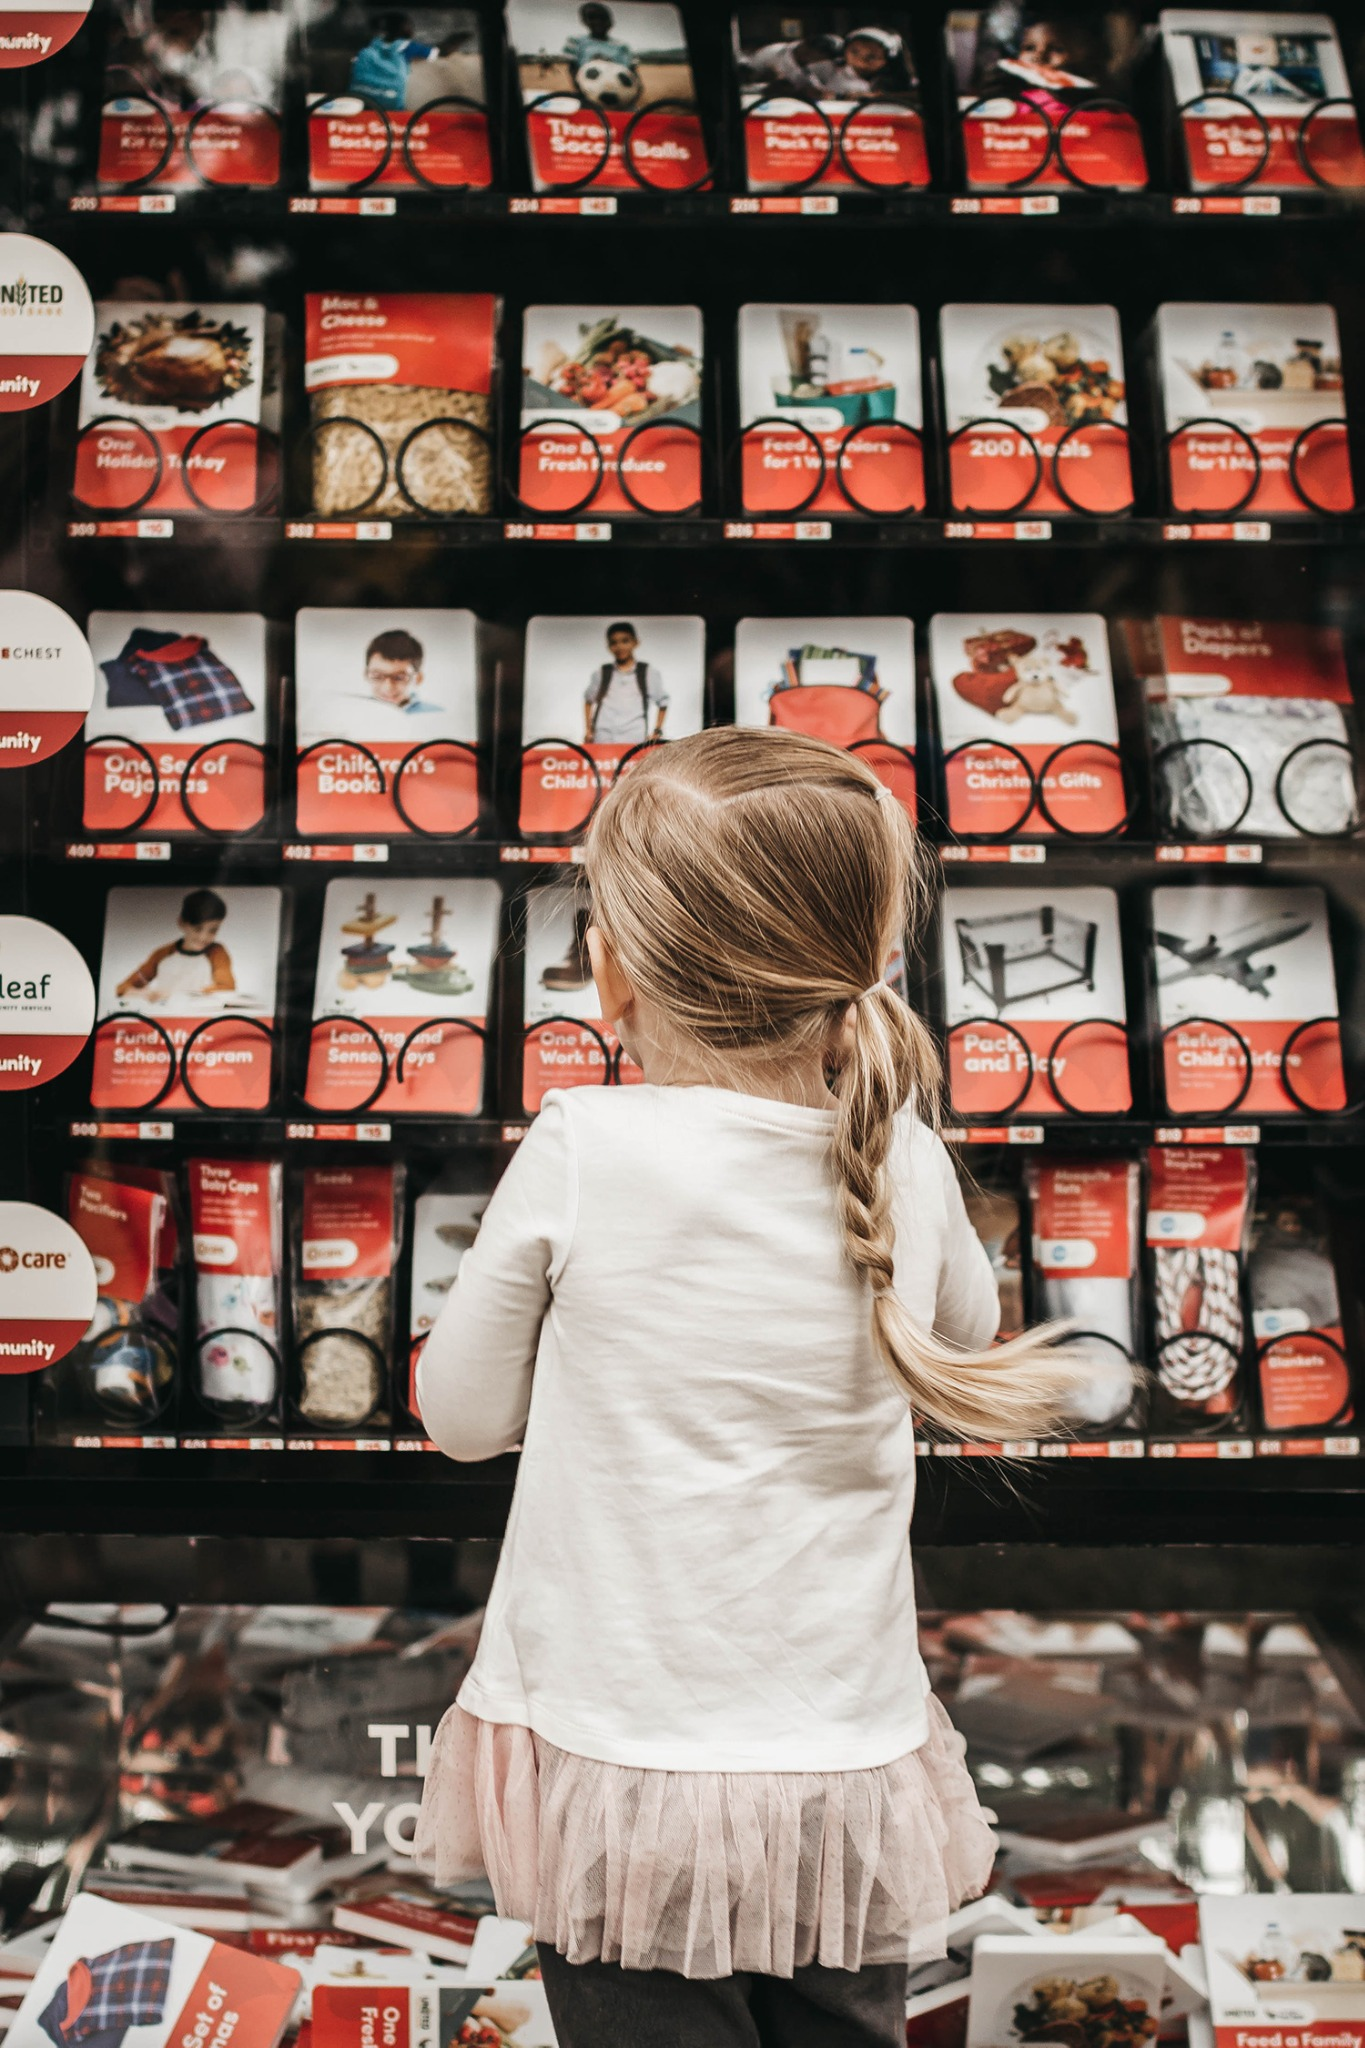 A girl looks at the many options available for purchase in a Giving Machine in Gilbert, Arizona. Gilbert is one of 10 locations this year where donations can be made during the Christmas season.